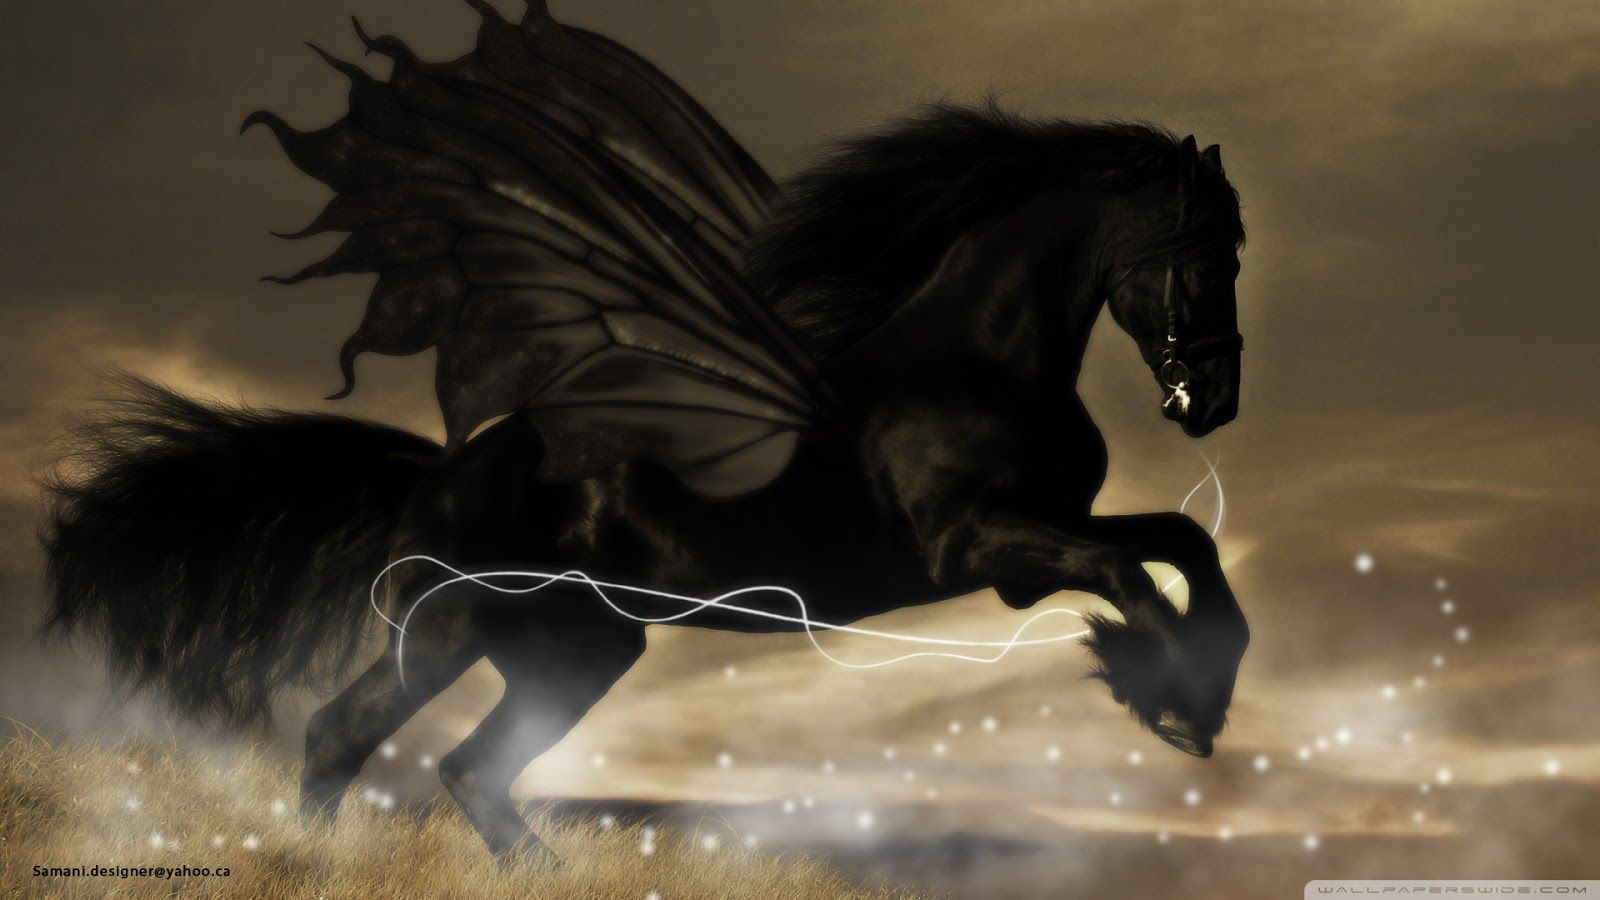 Black Horse Wallpapers Beautiful Acterss Wallpapers Hd Horse Wallpaper Horses Fantasy Horses